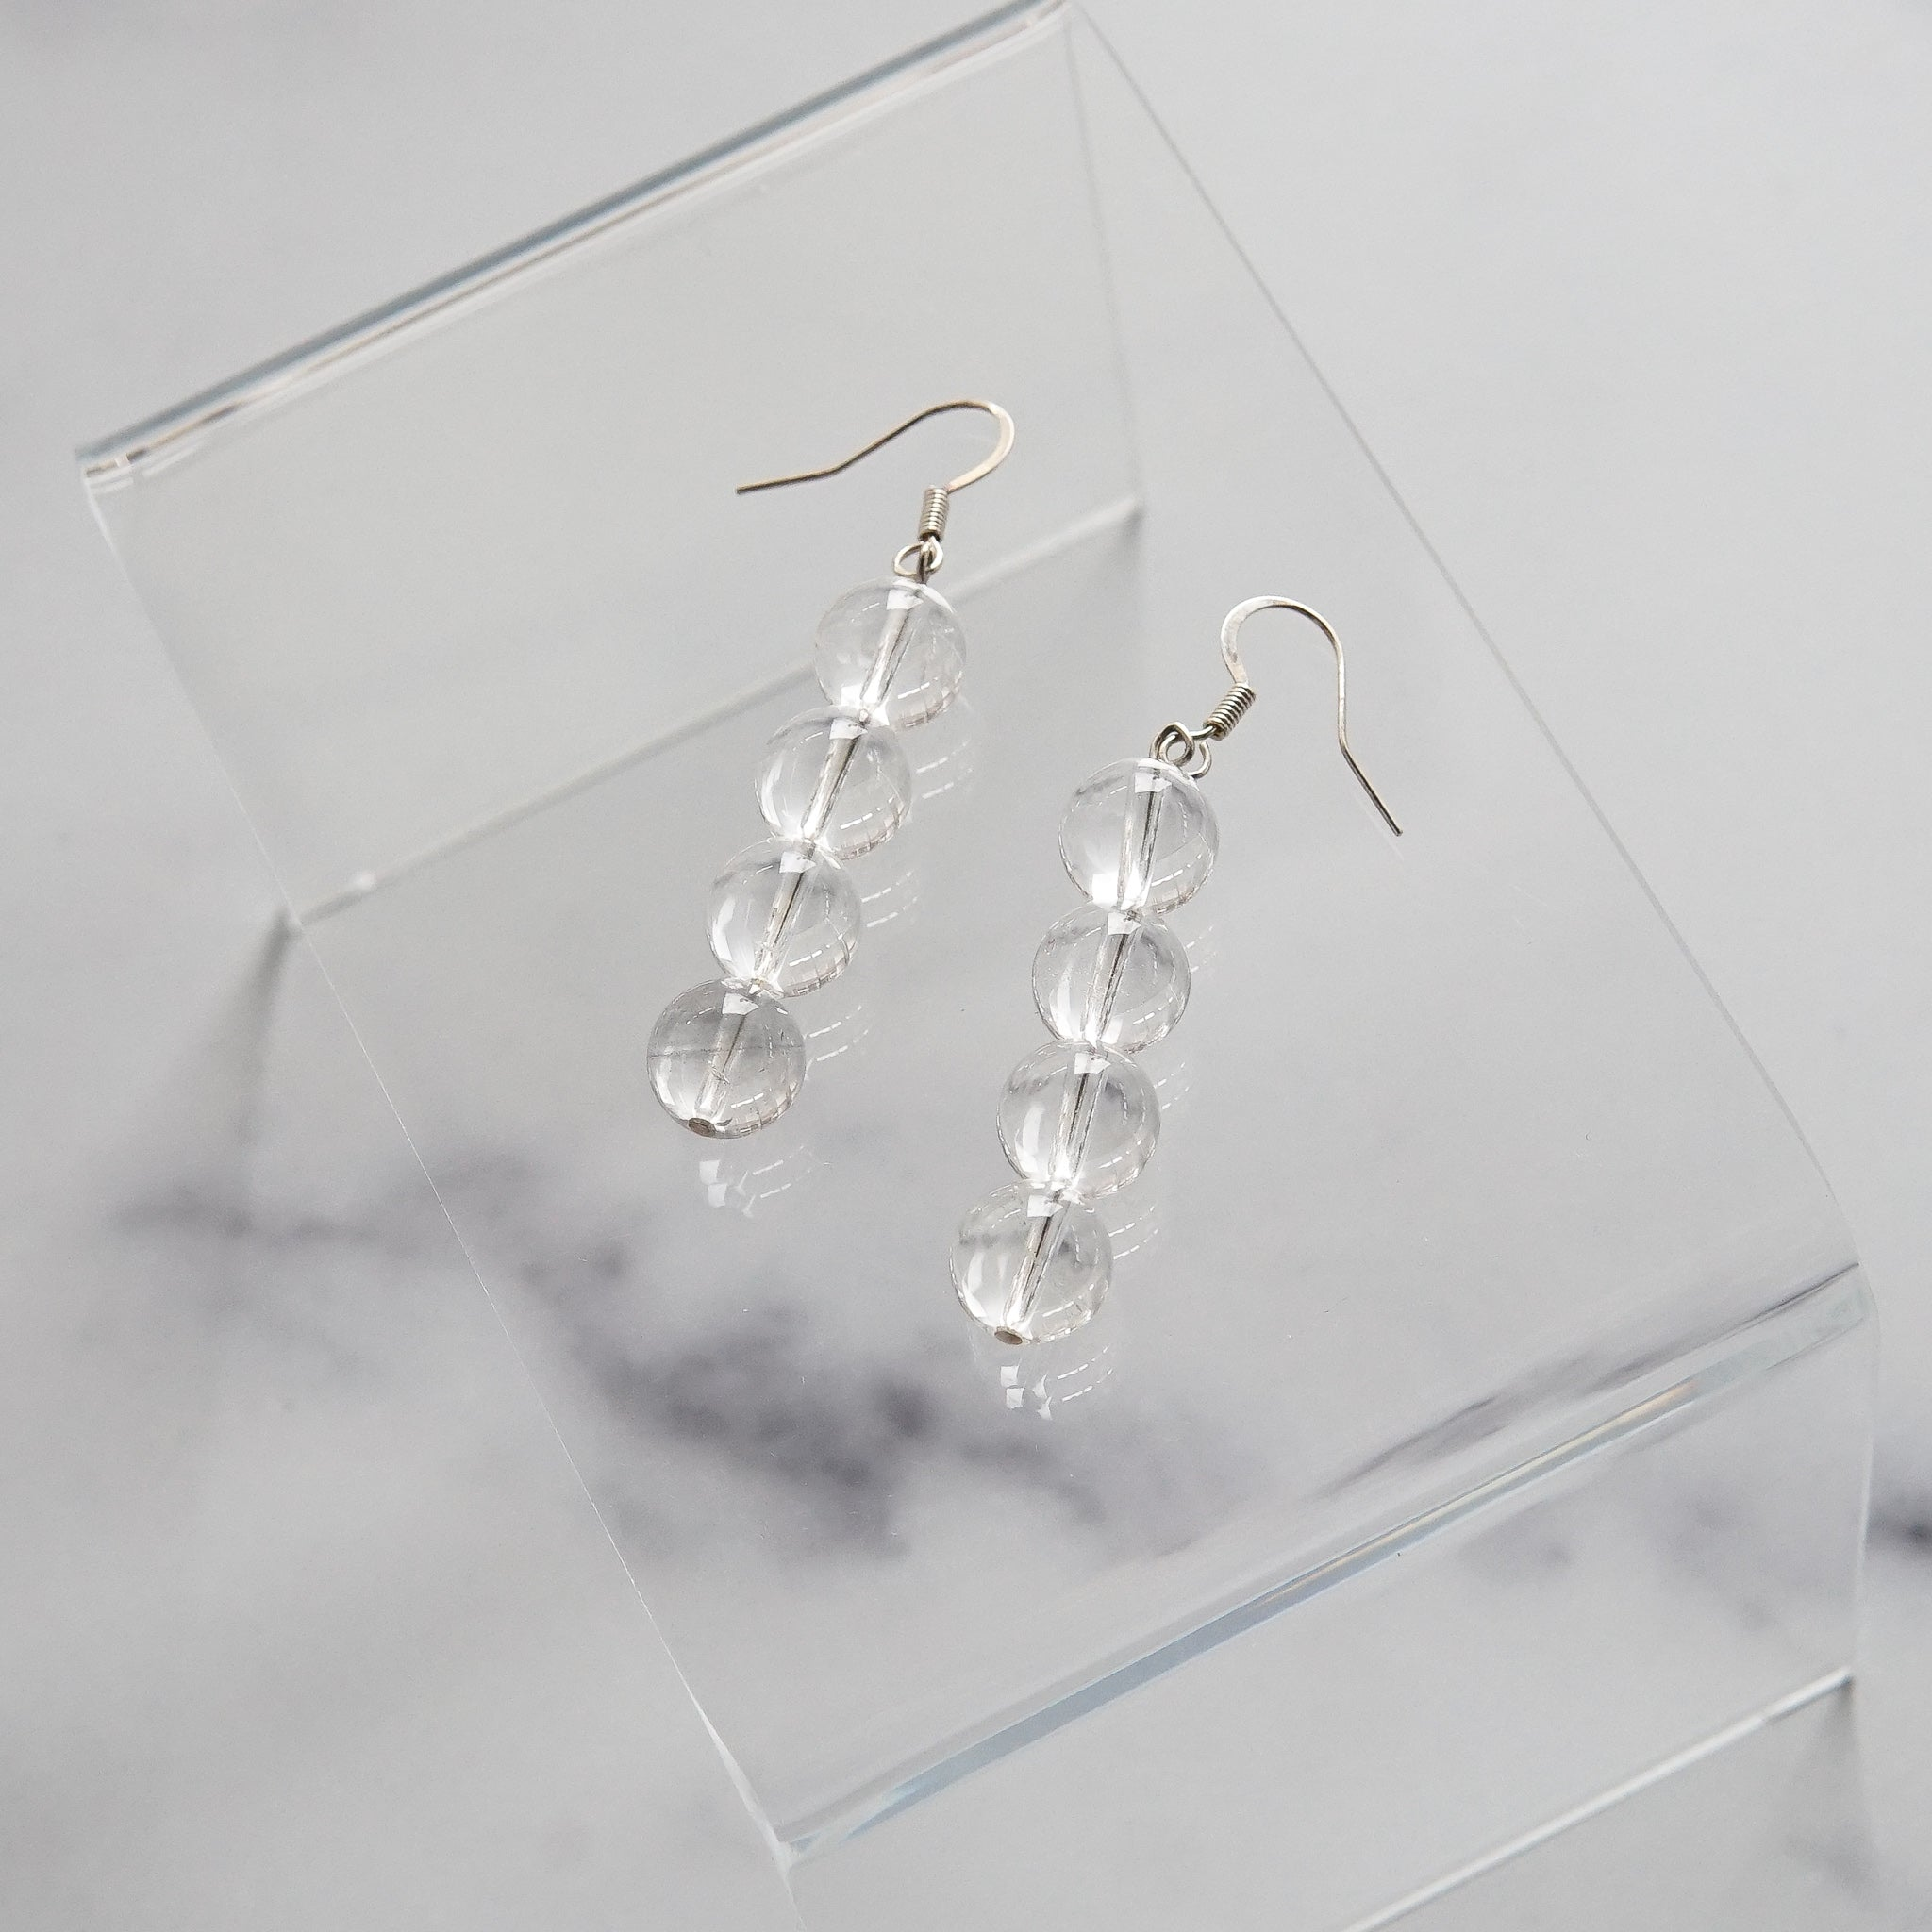 Sea & Pattern: Quartz Drop Earrings